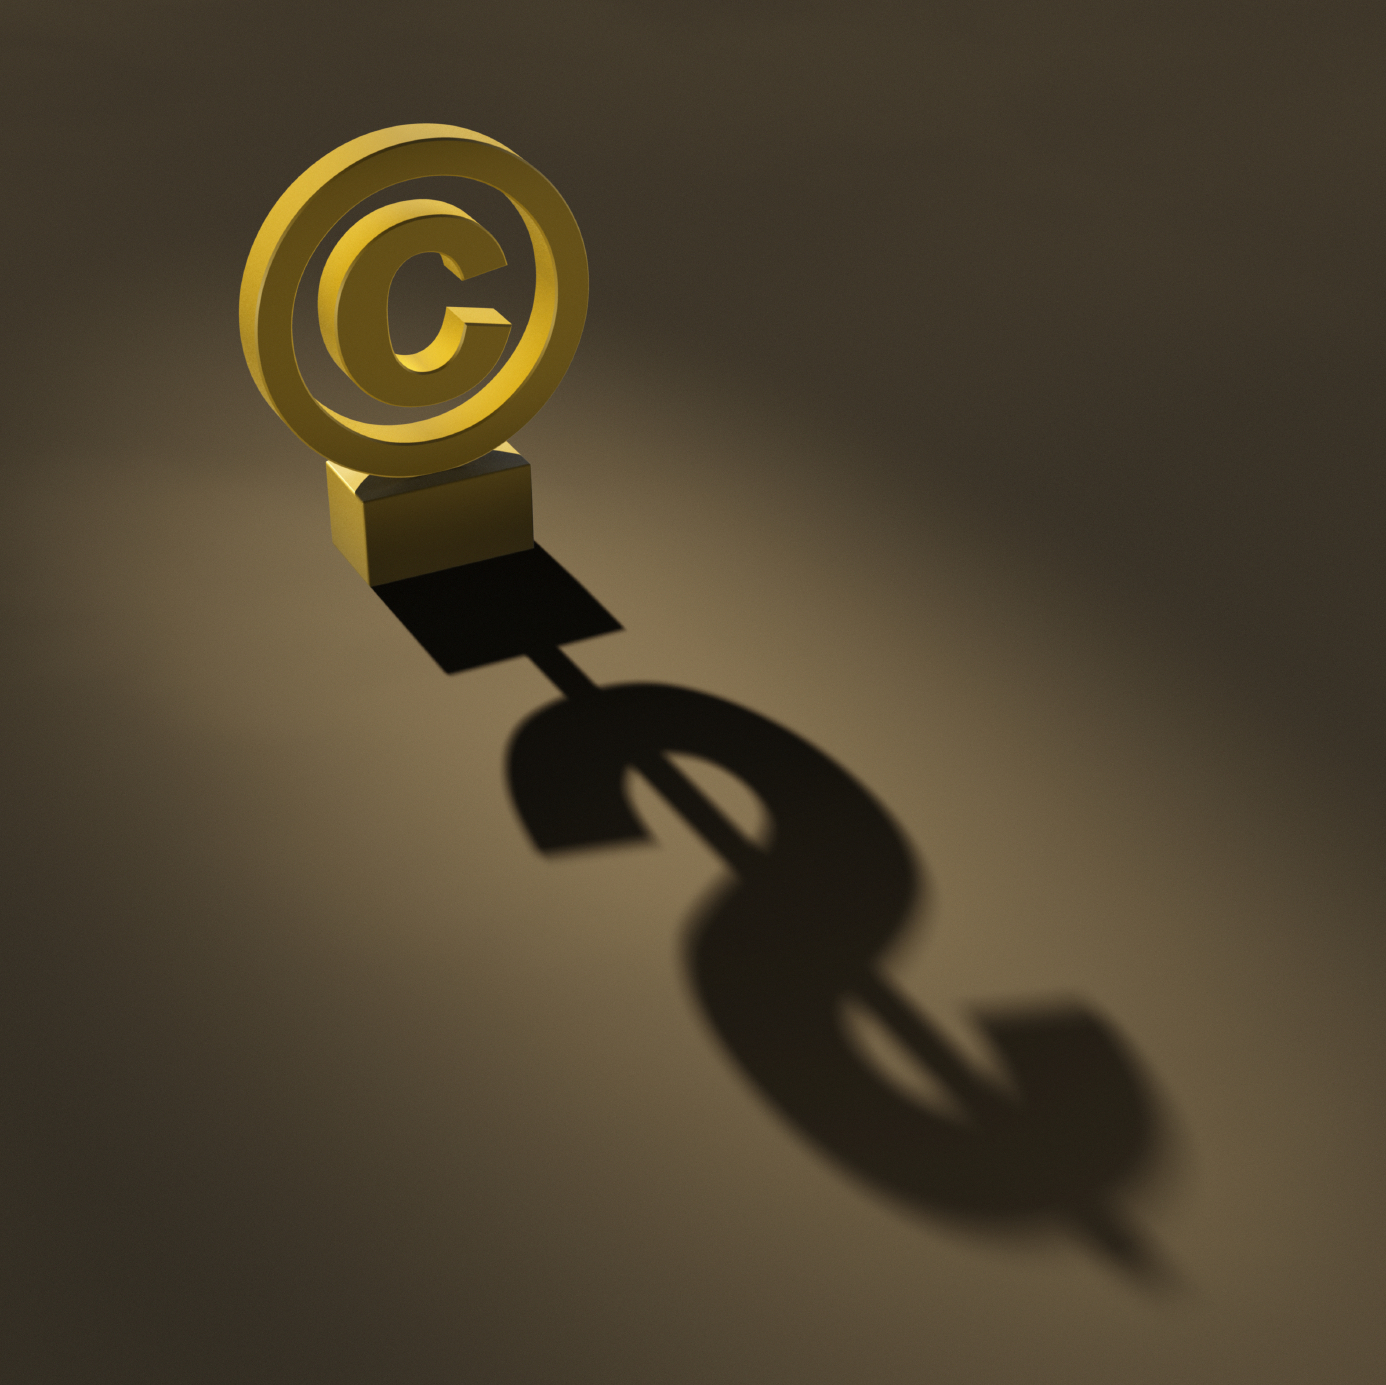 Copyright symbol with money sign in shadow